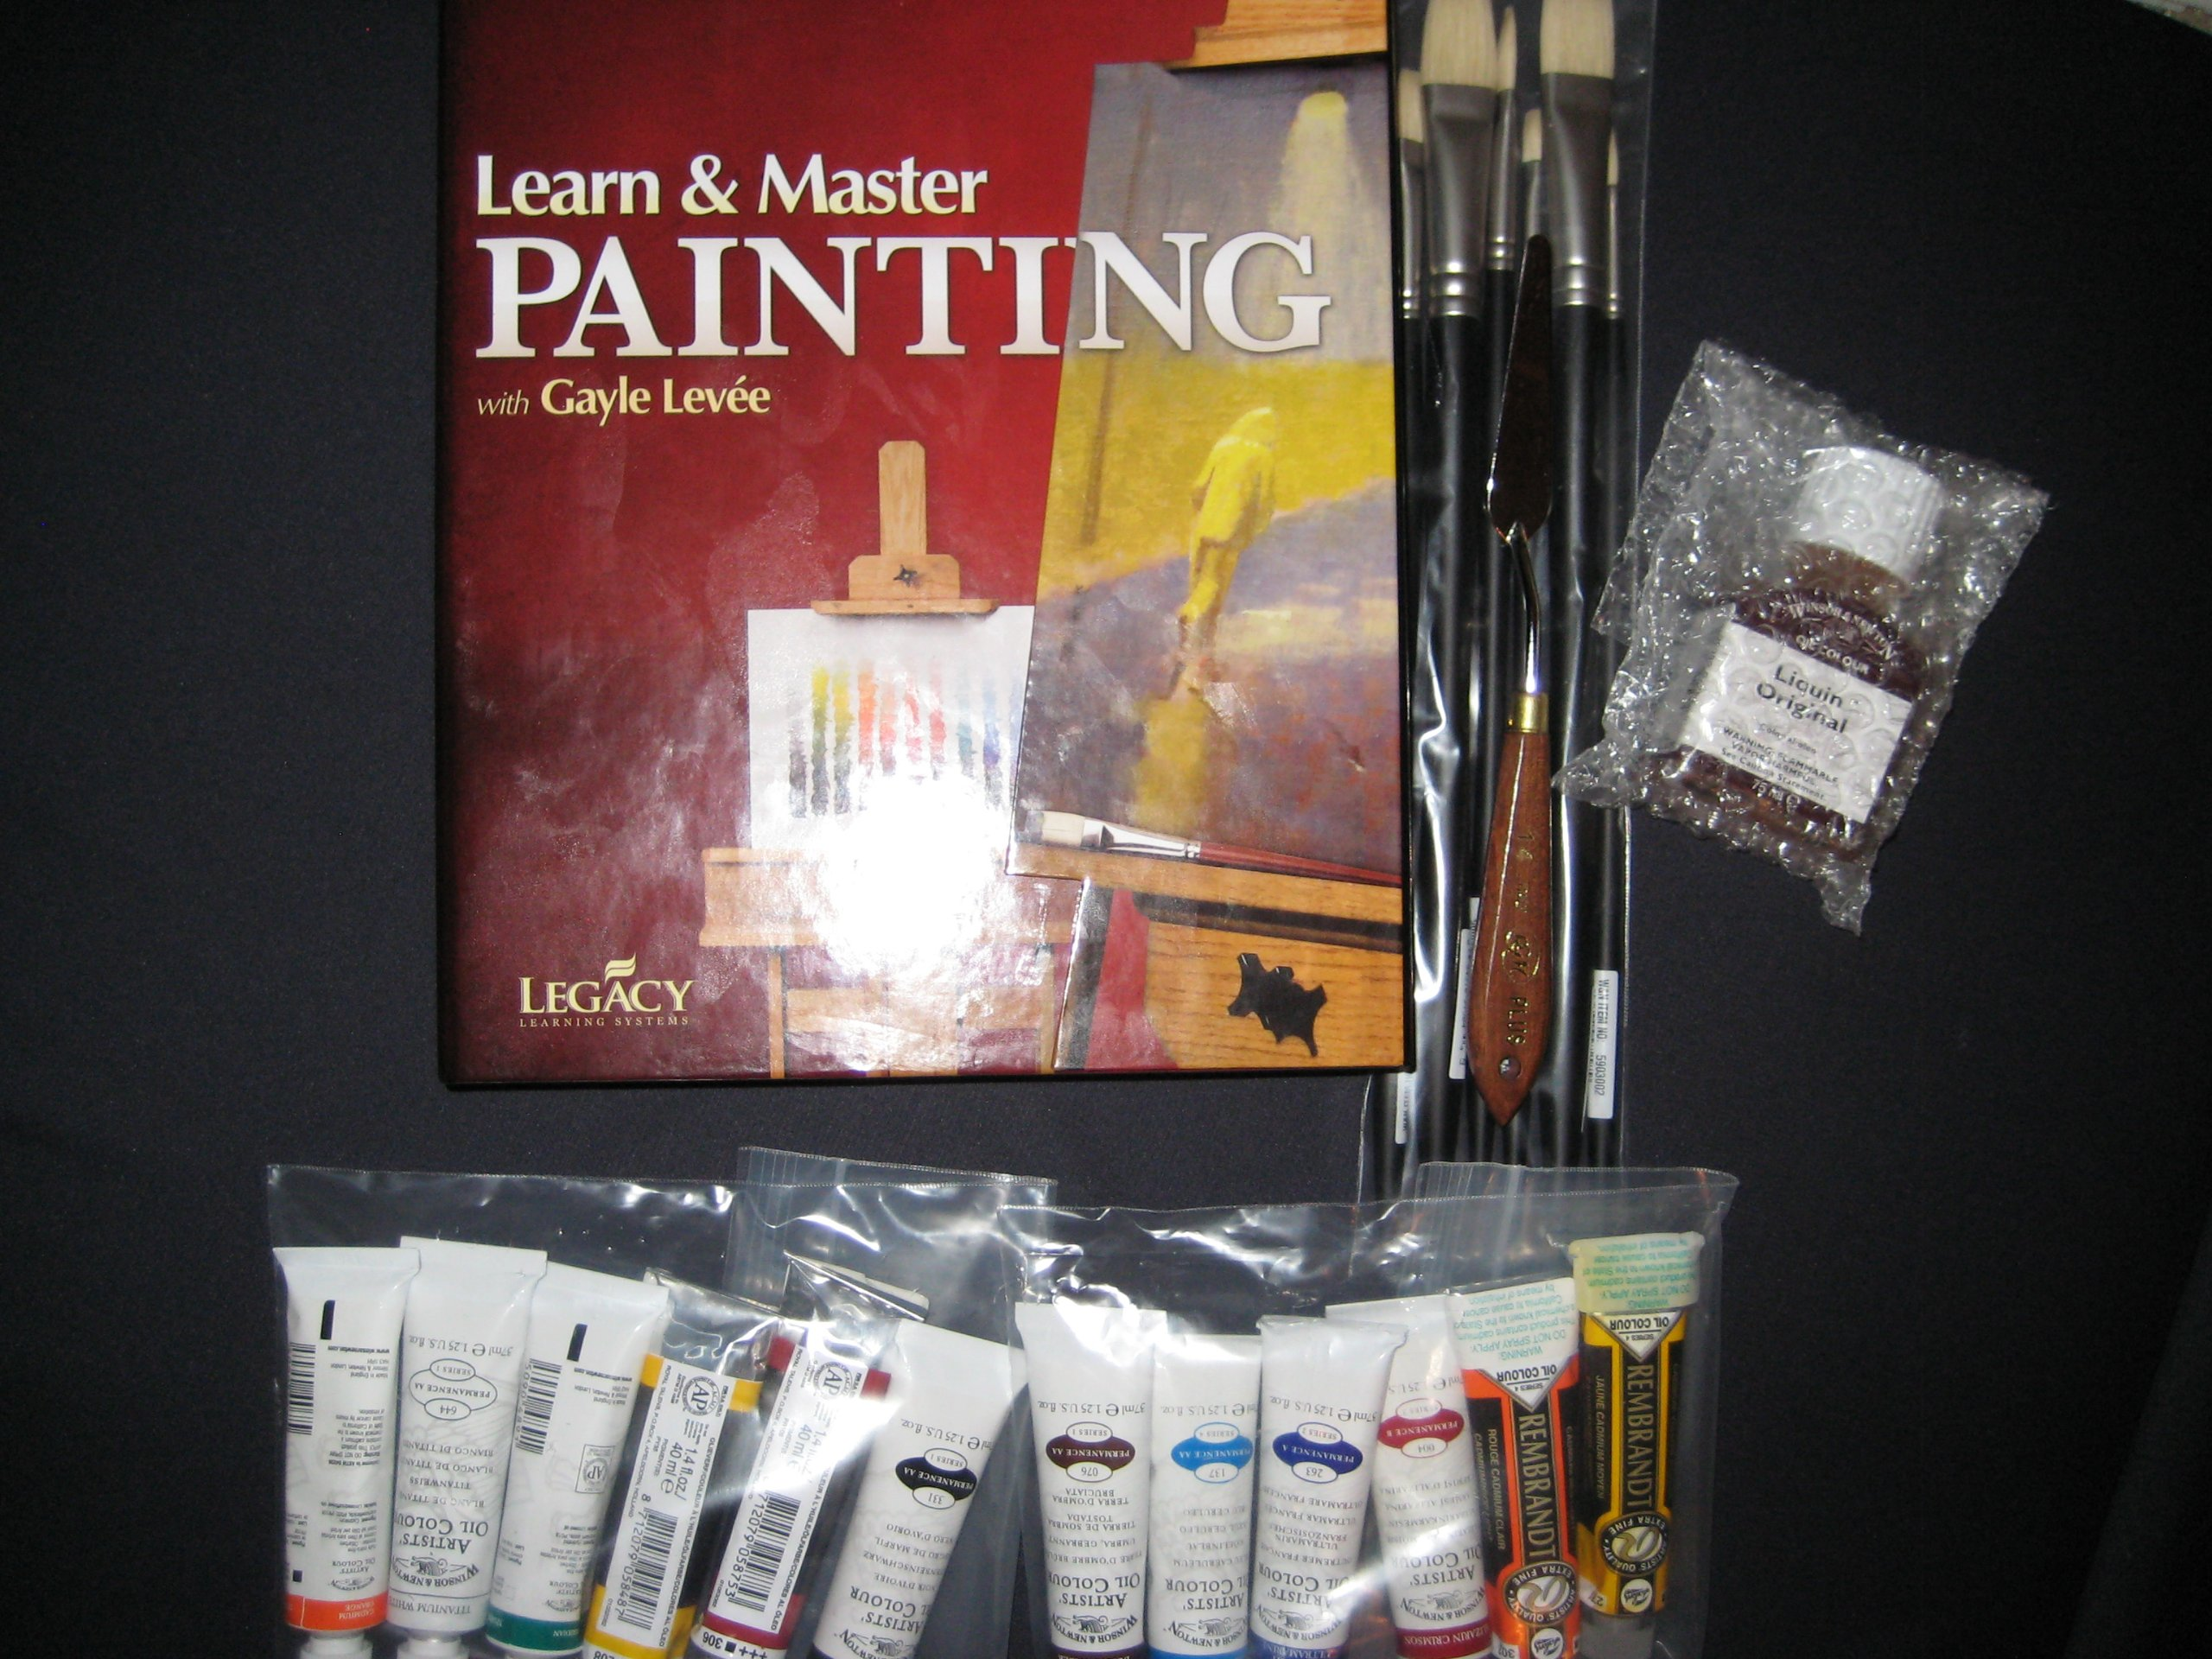 Download Learn and Master Painting with Gayle Levee, 20 DVDs, 3 Music CDs, Lesson Book, & unlimited access to Support Site from Legacy Learning pdf